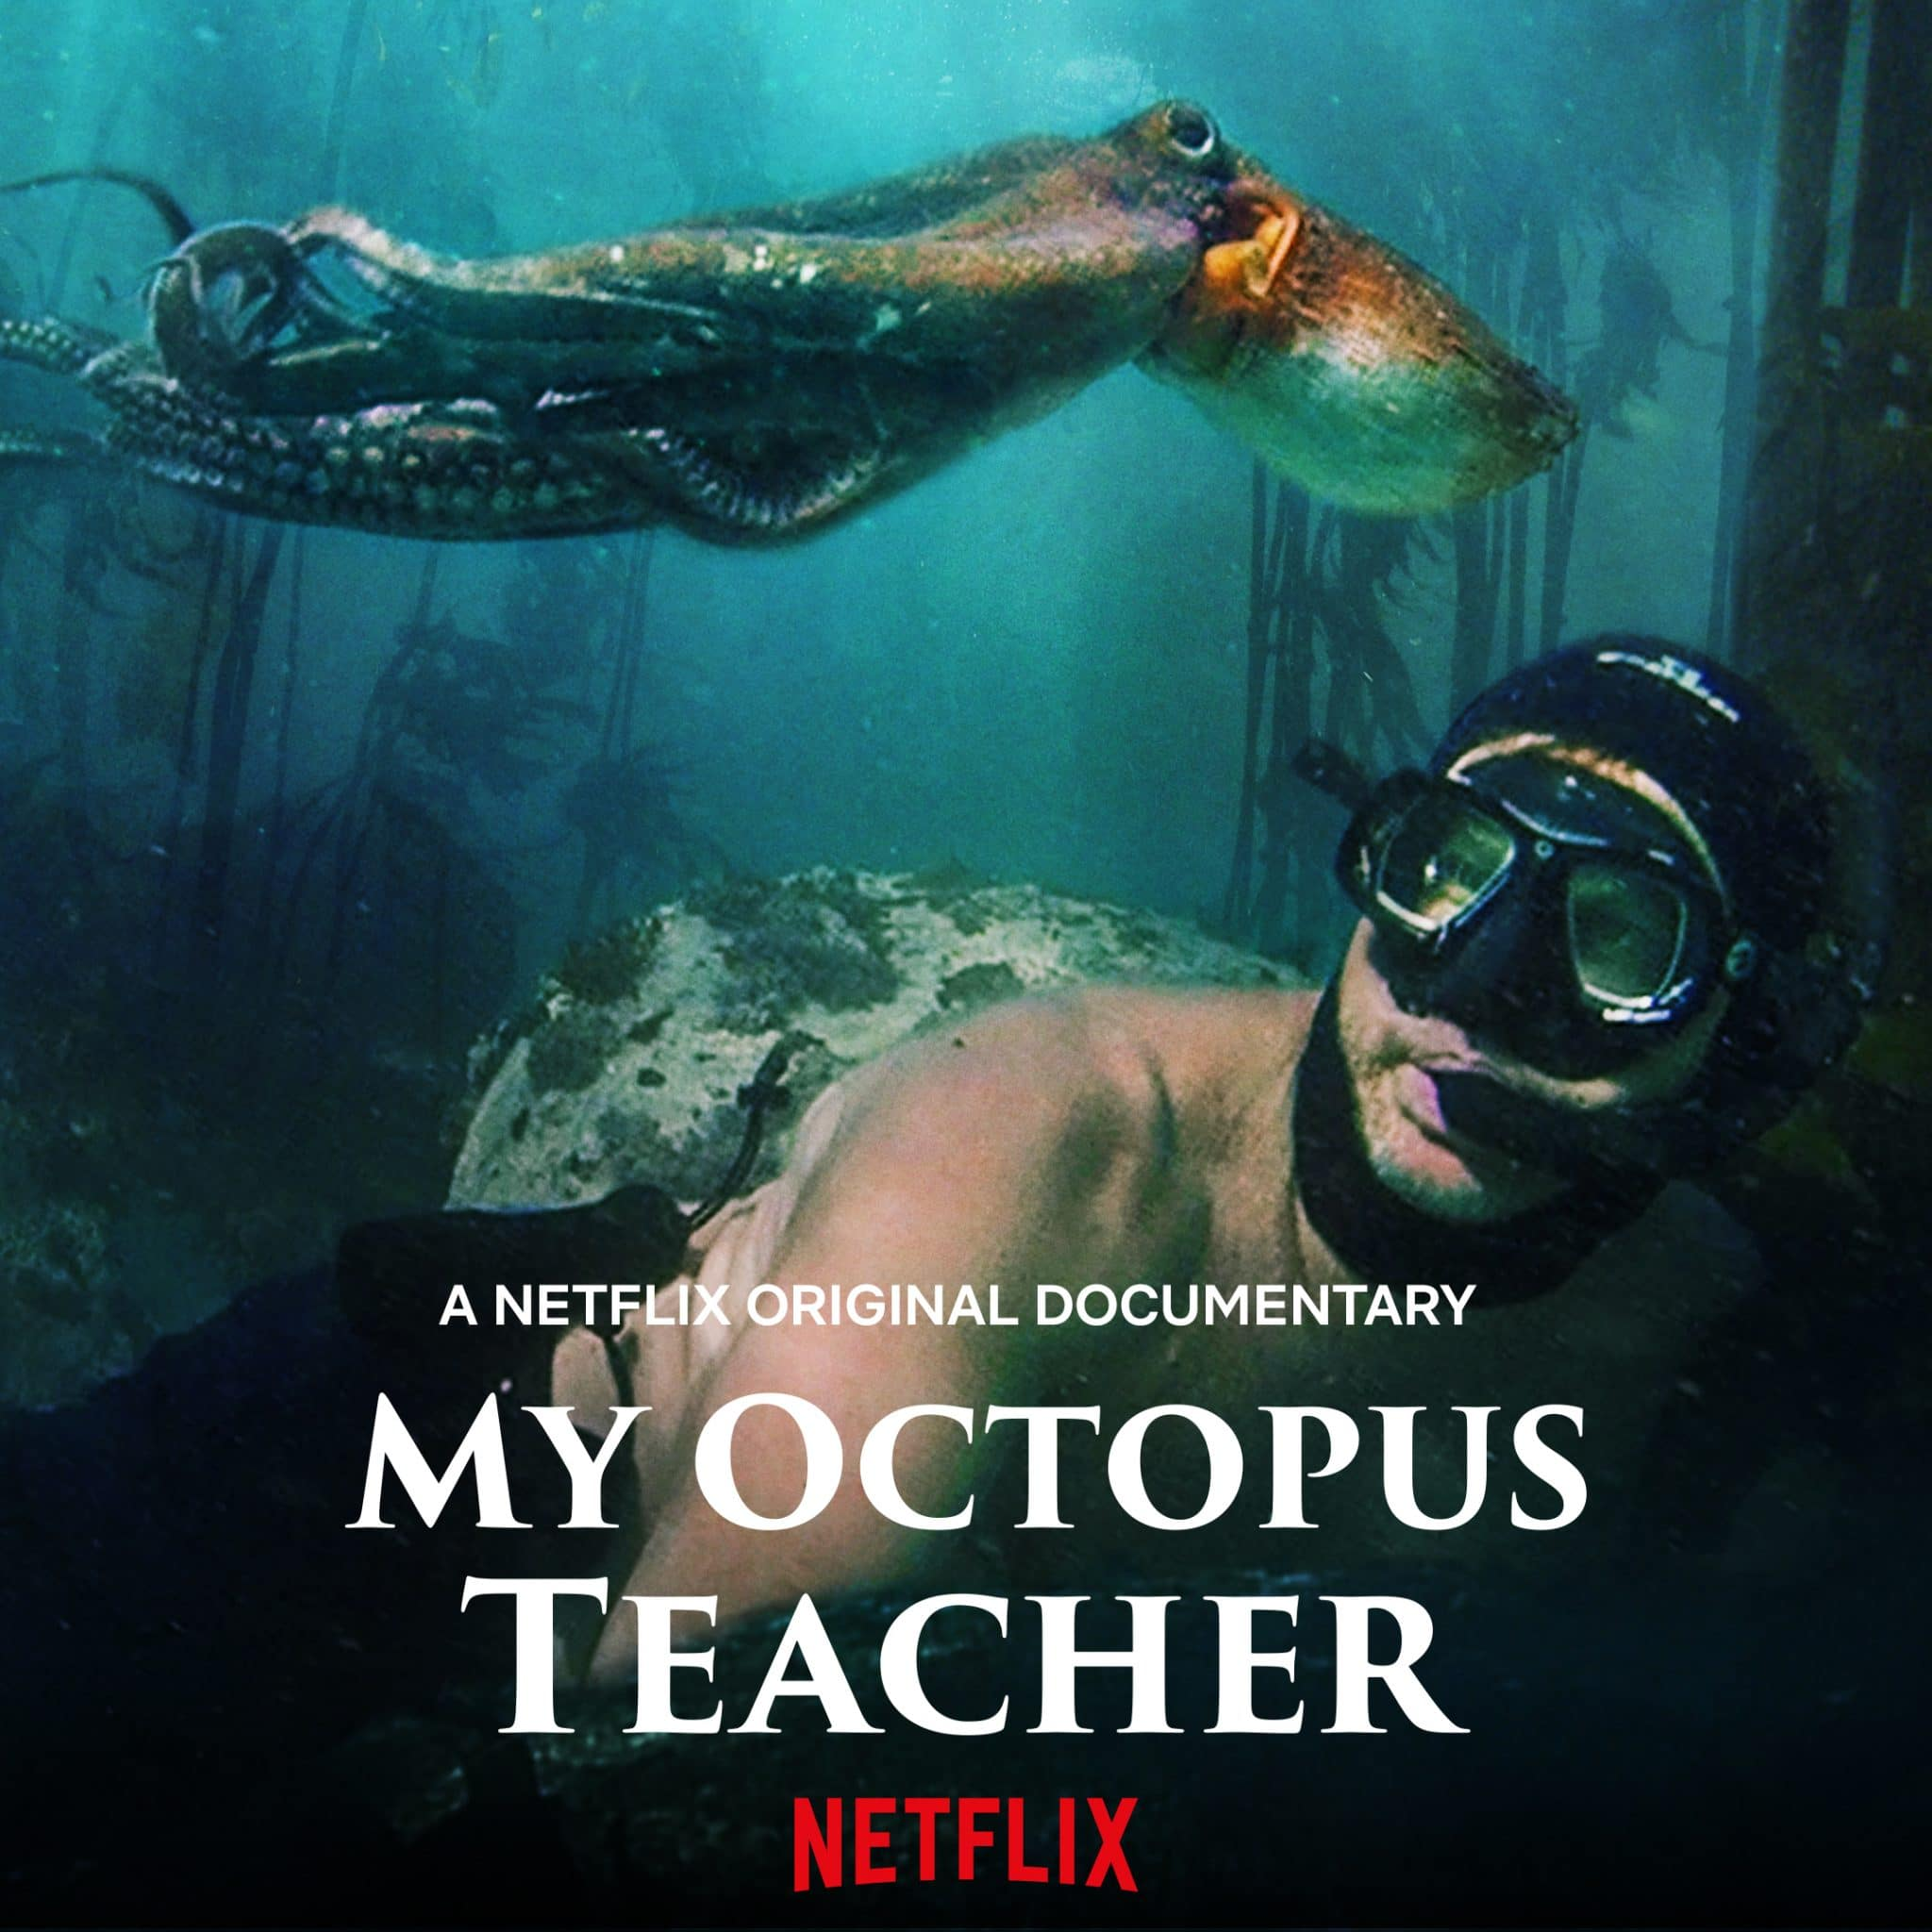 the poster for My Octopus Teacher